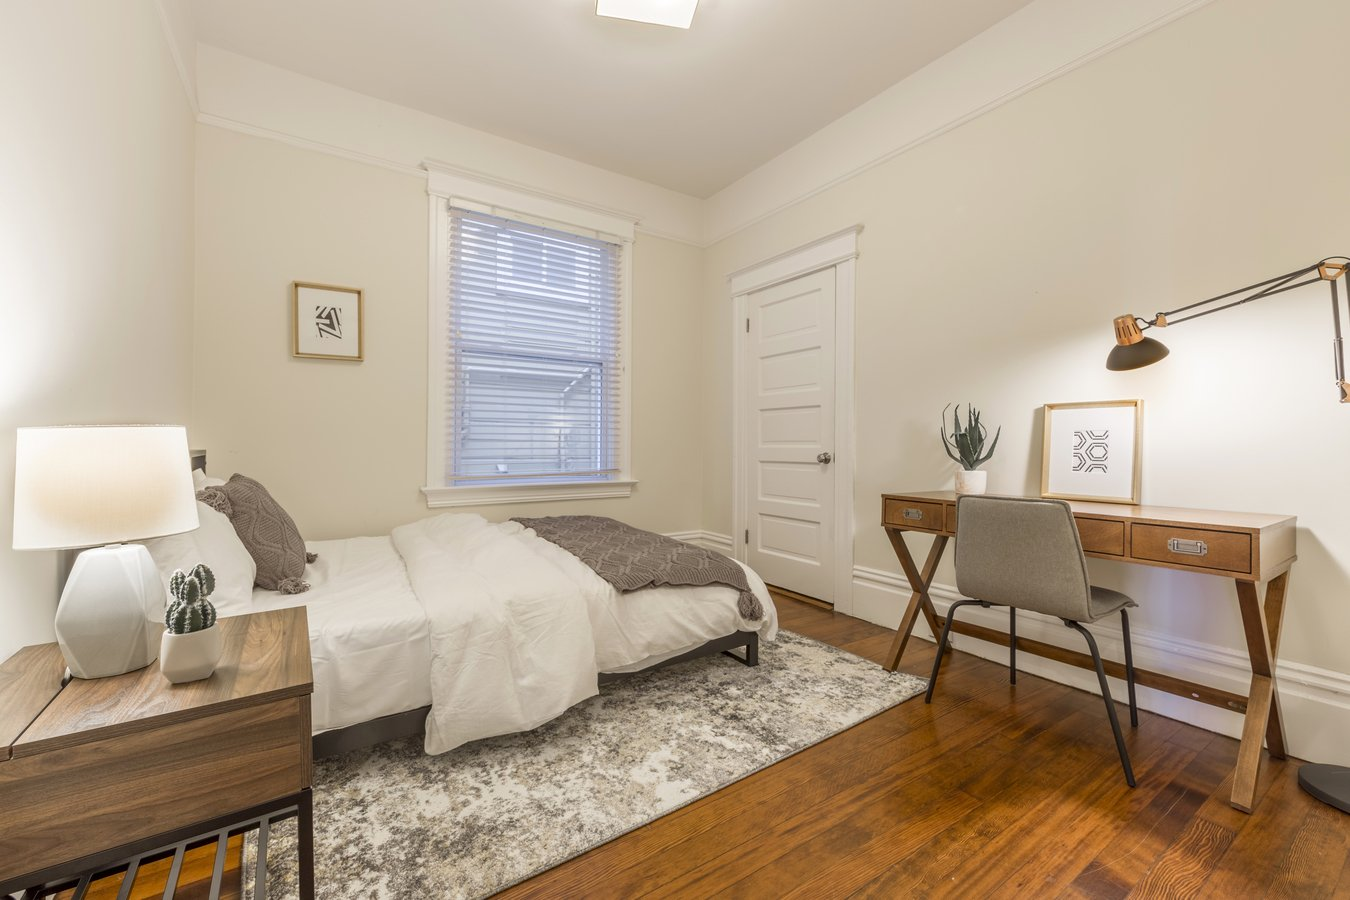 Studio 1 Bathroom House for rent at S Van Ness Ave & 14Th St Coliving in San Francisco, CA